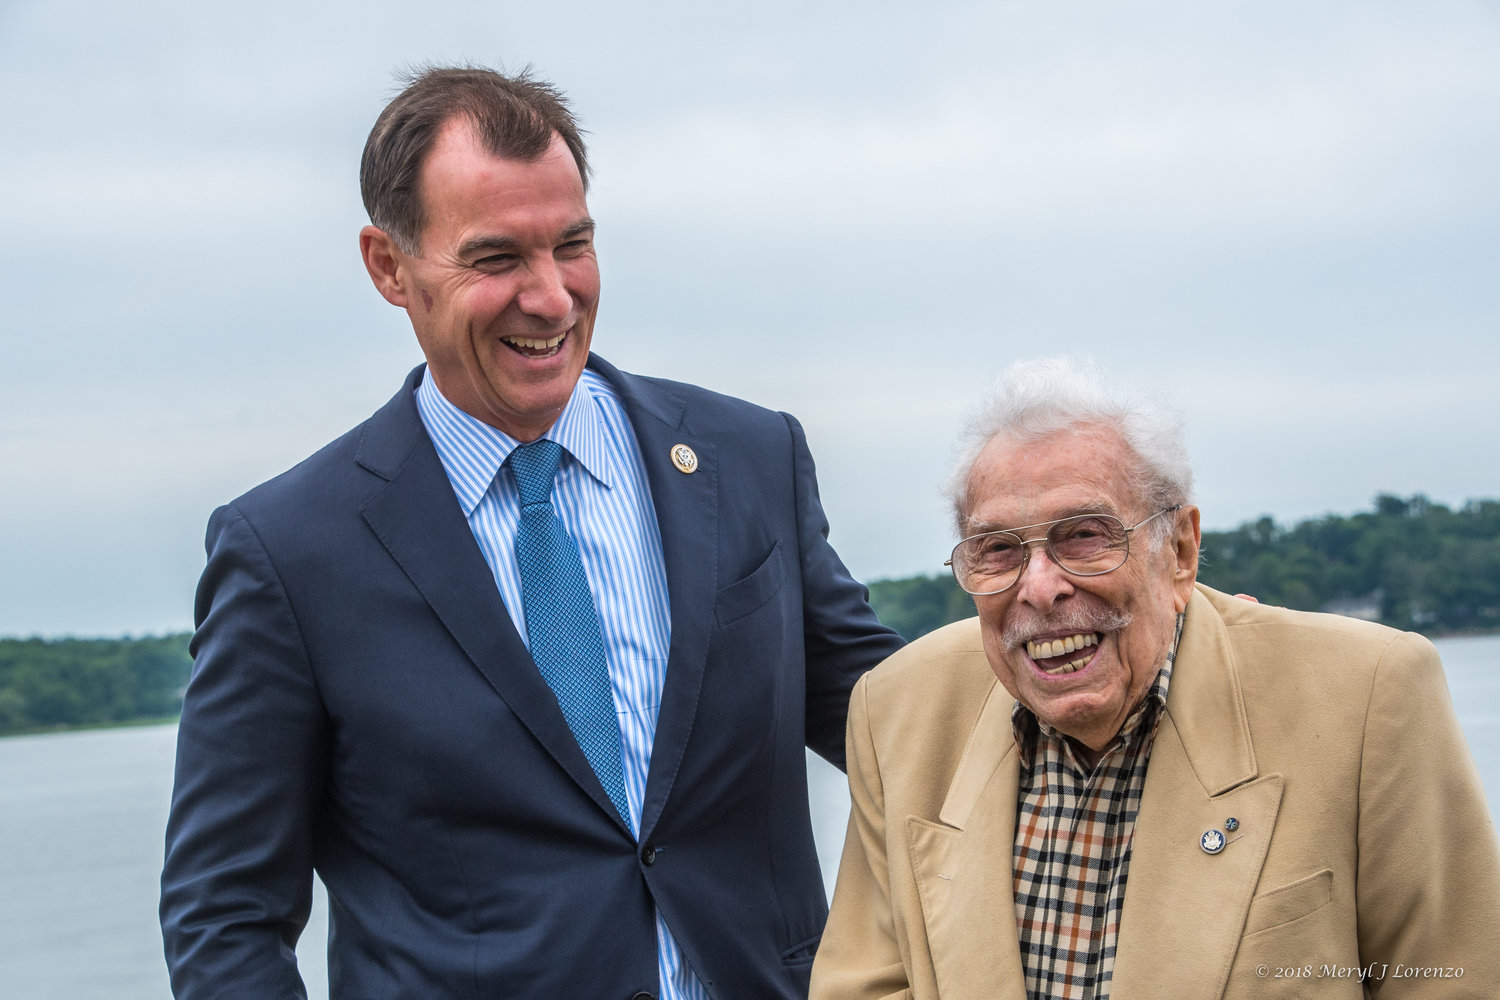 U.S. Rep. Tom Suozzi honored former Congressman Lester Wolff for his service to the North Shore by sponsoring legislation to rename an Oyster Bay wildlife refuge after him. President Trump signed the measure into law on Monday.